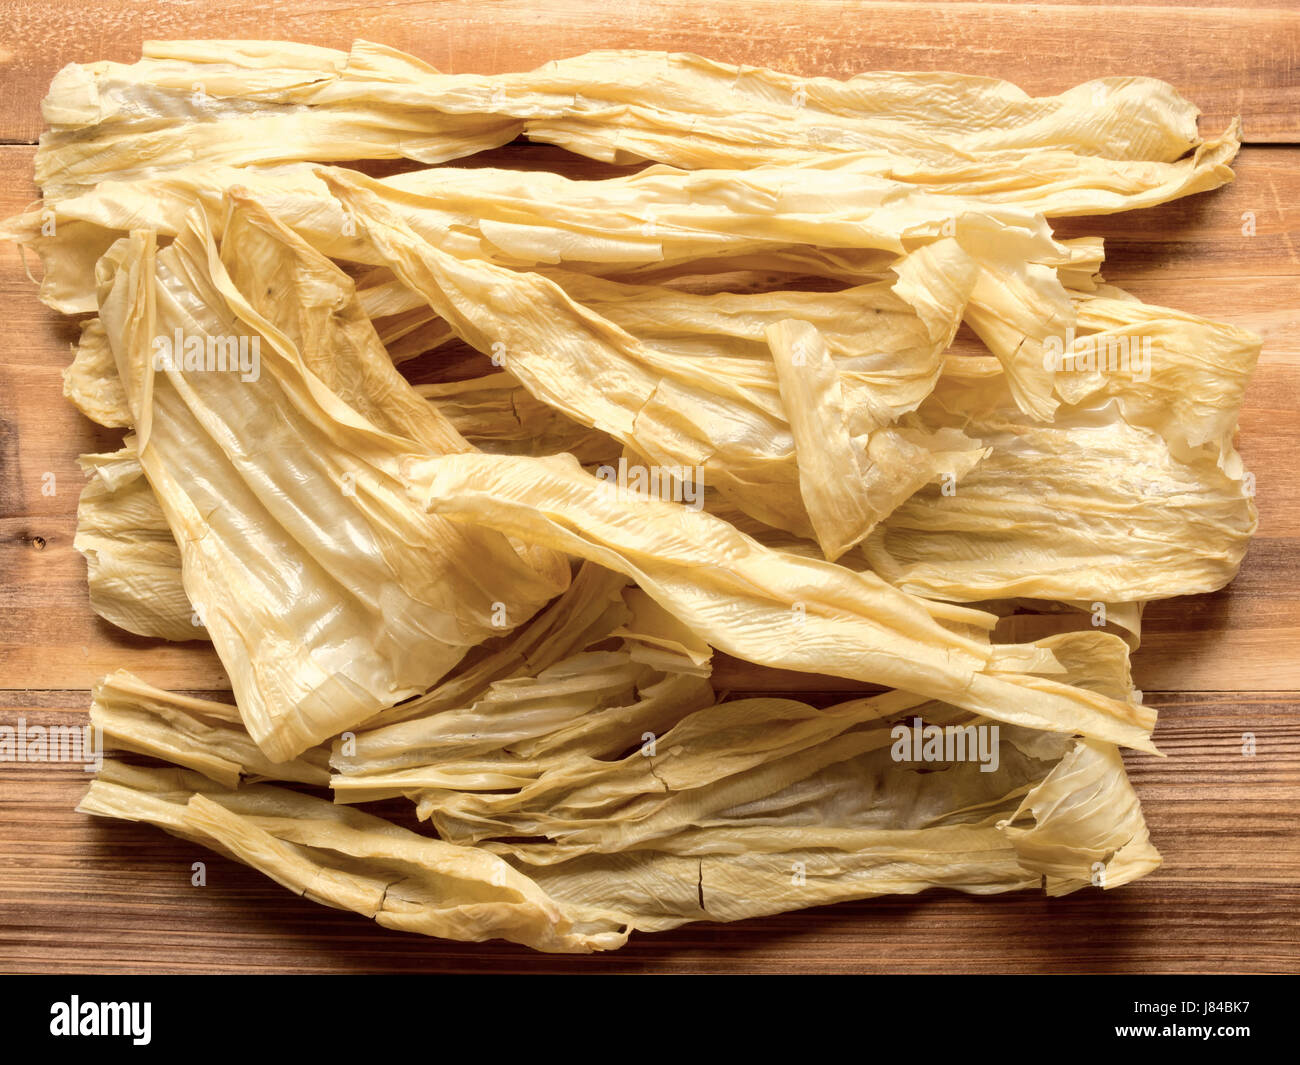 skin dried curd curds preserved bean stick food aliment colour skin horizontal - Stock Image